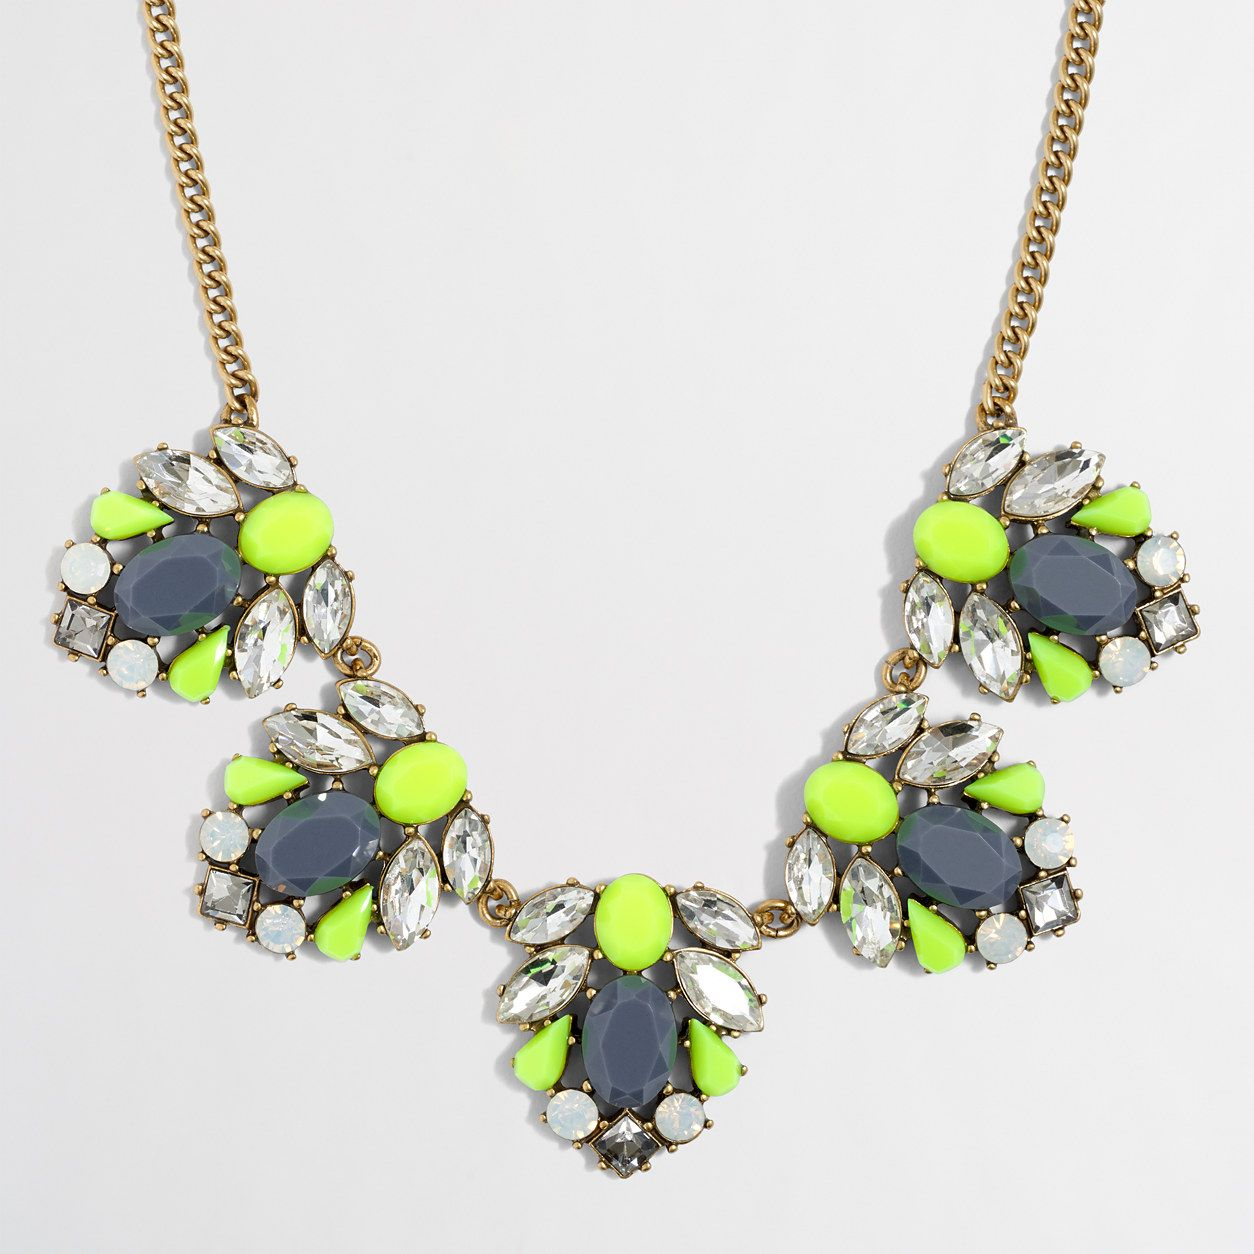 Factory mixed stone clusters necklace necklaces jcrew factory